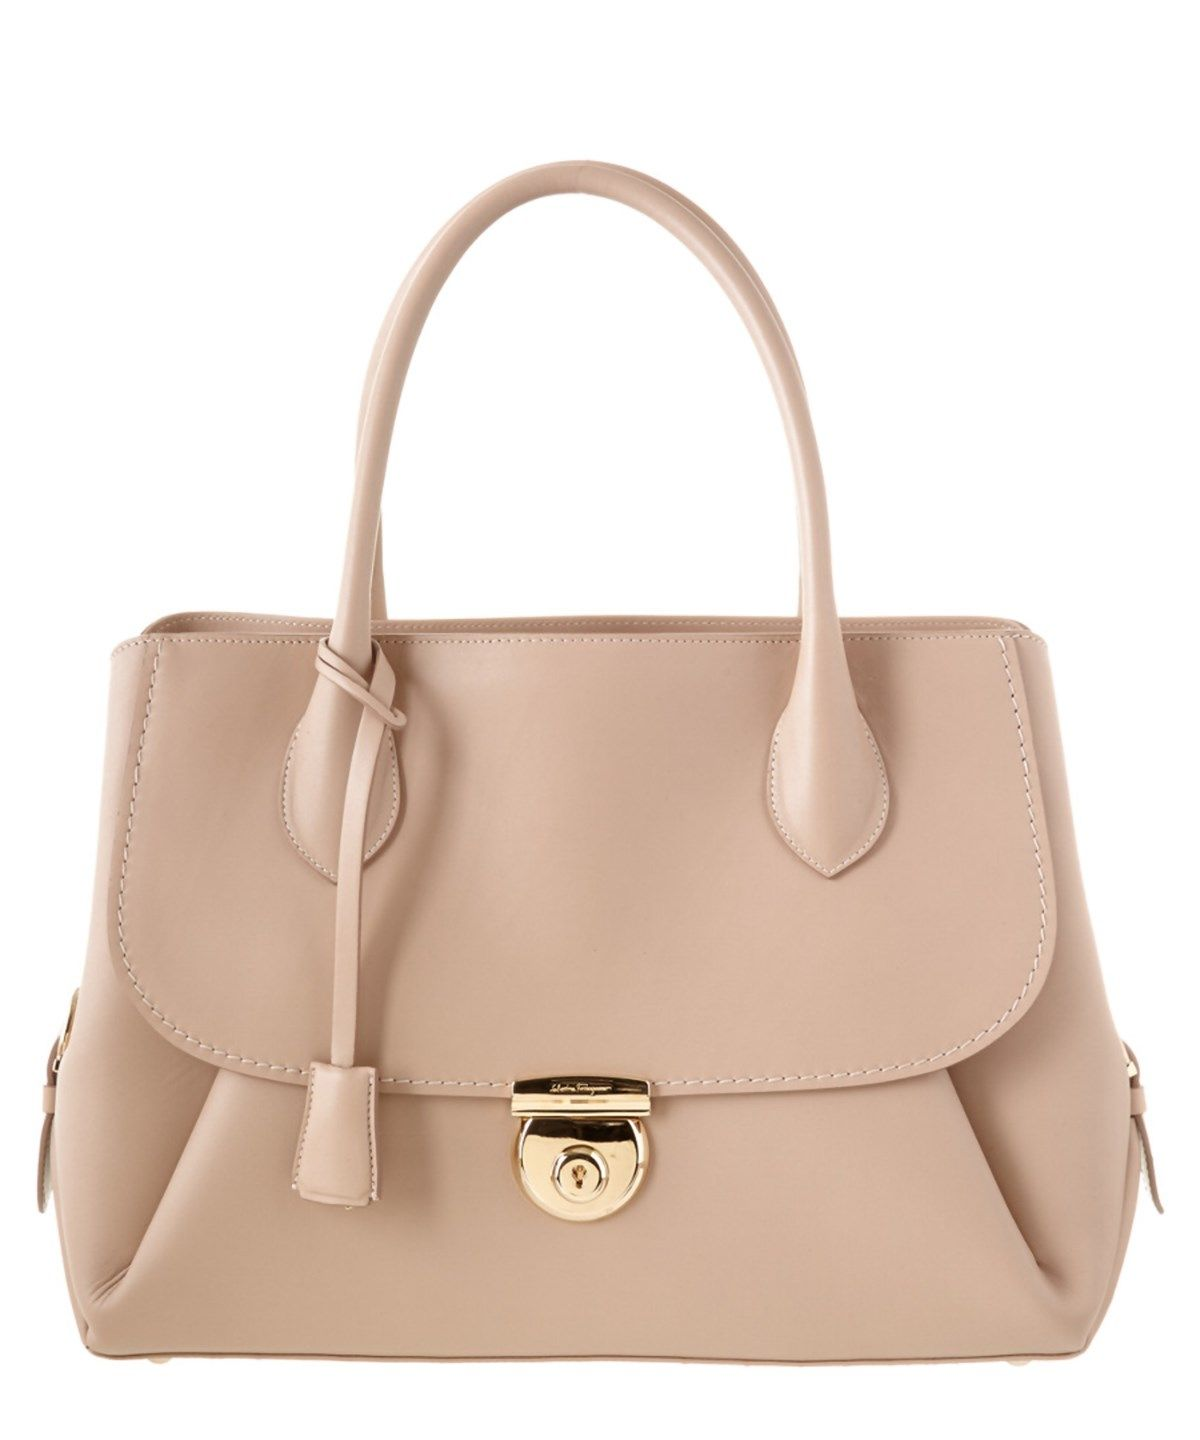 SALVATORE FERRAGAMO Salvatore Ferragamo East West Fiamma Leather Tote .   salvatoreferragamo  bags   c94153811ad4e